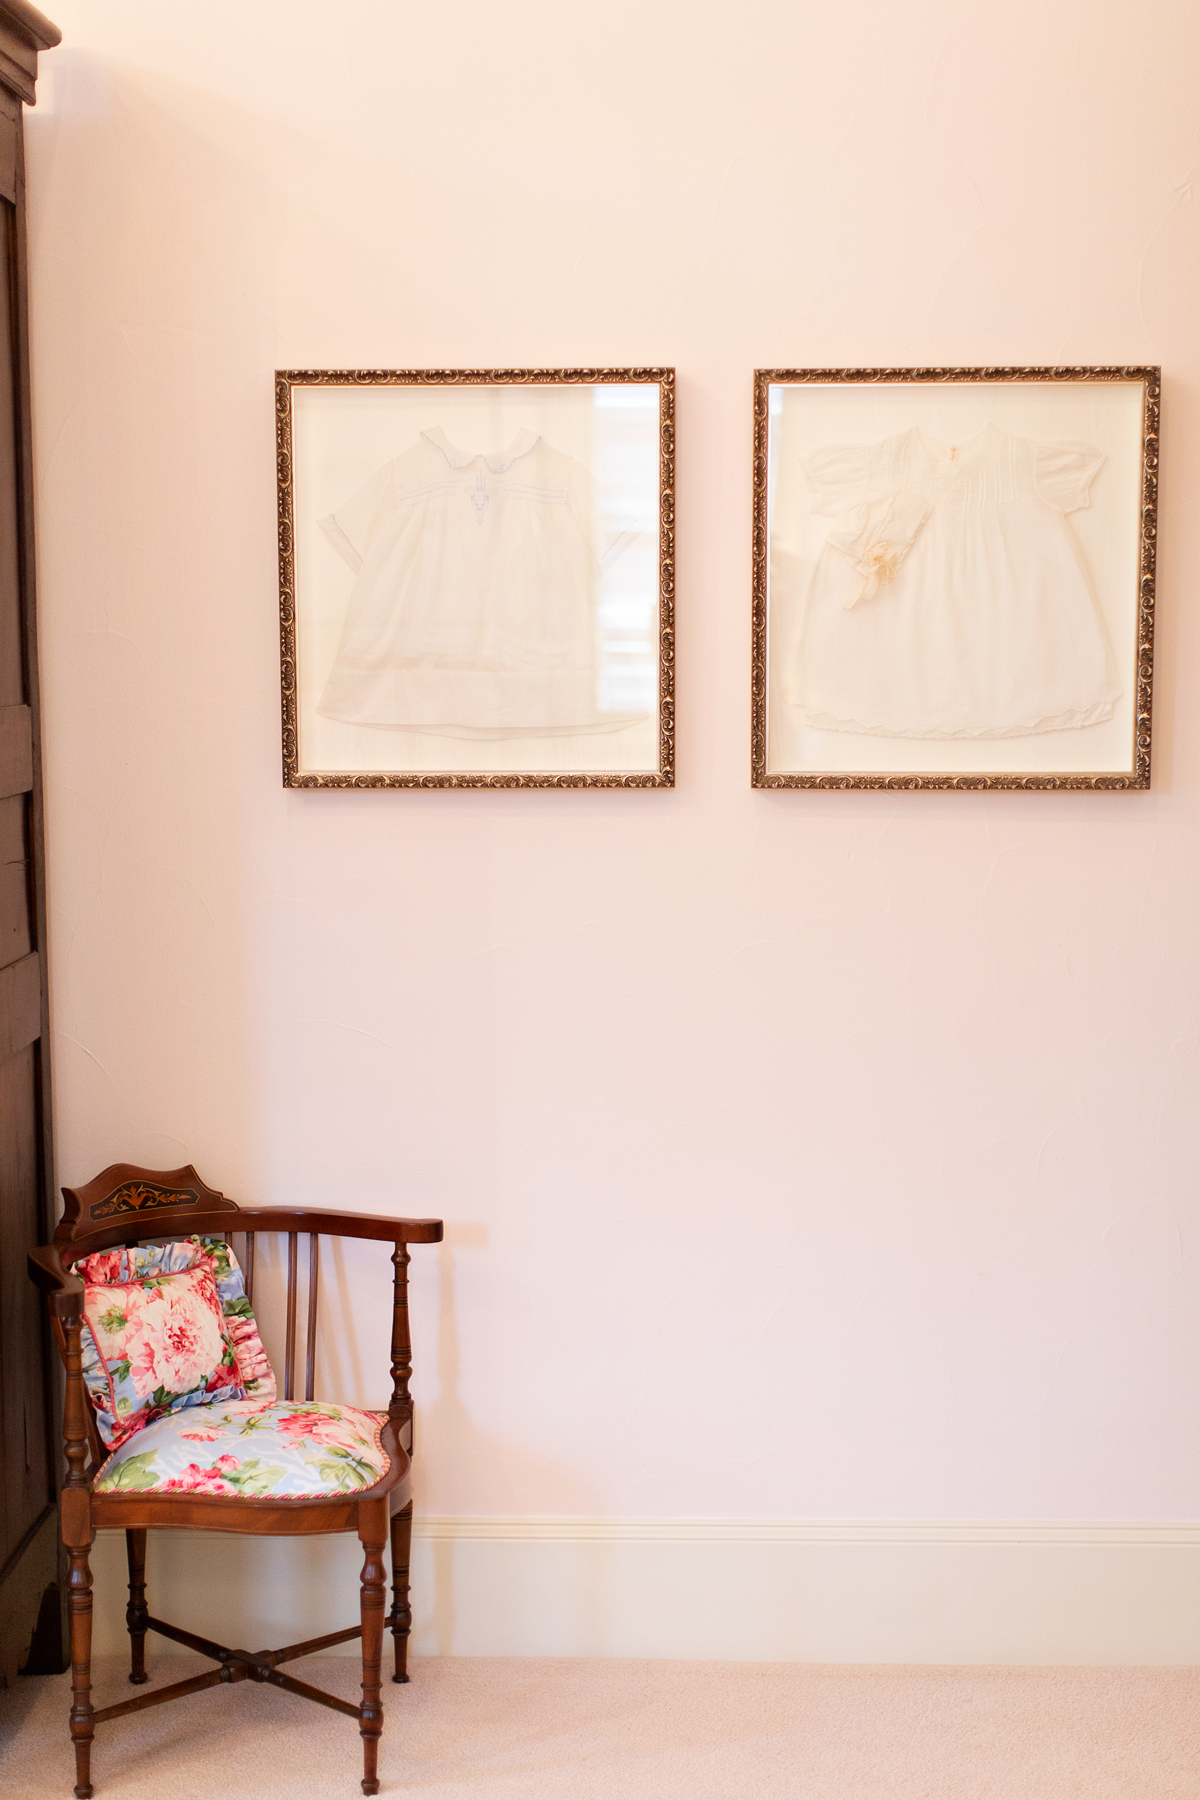 two framed baptismal gowns on the wall of a room